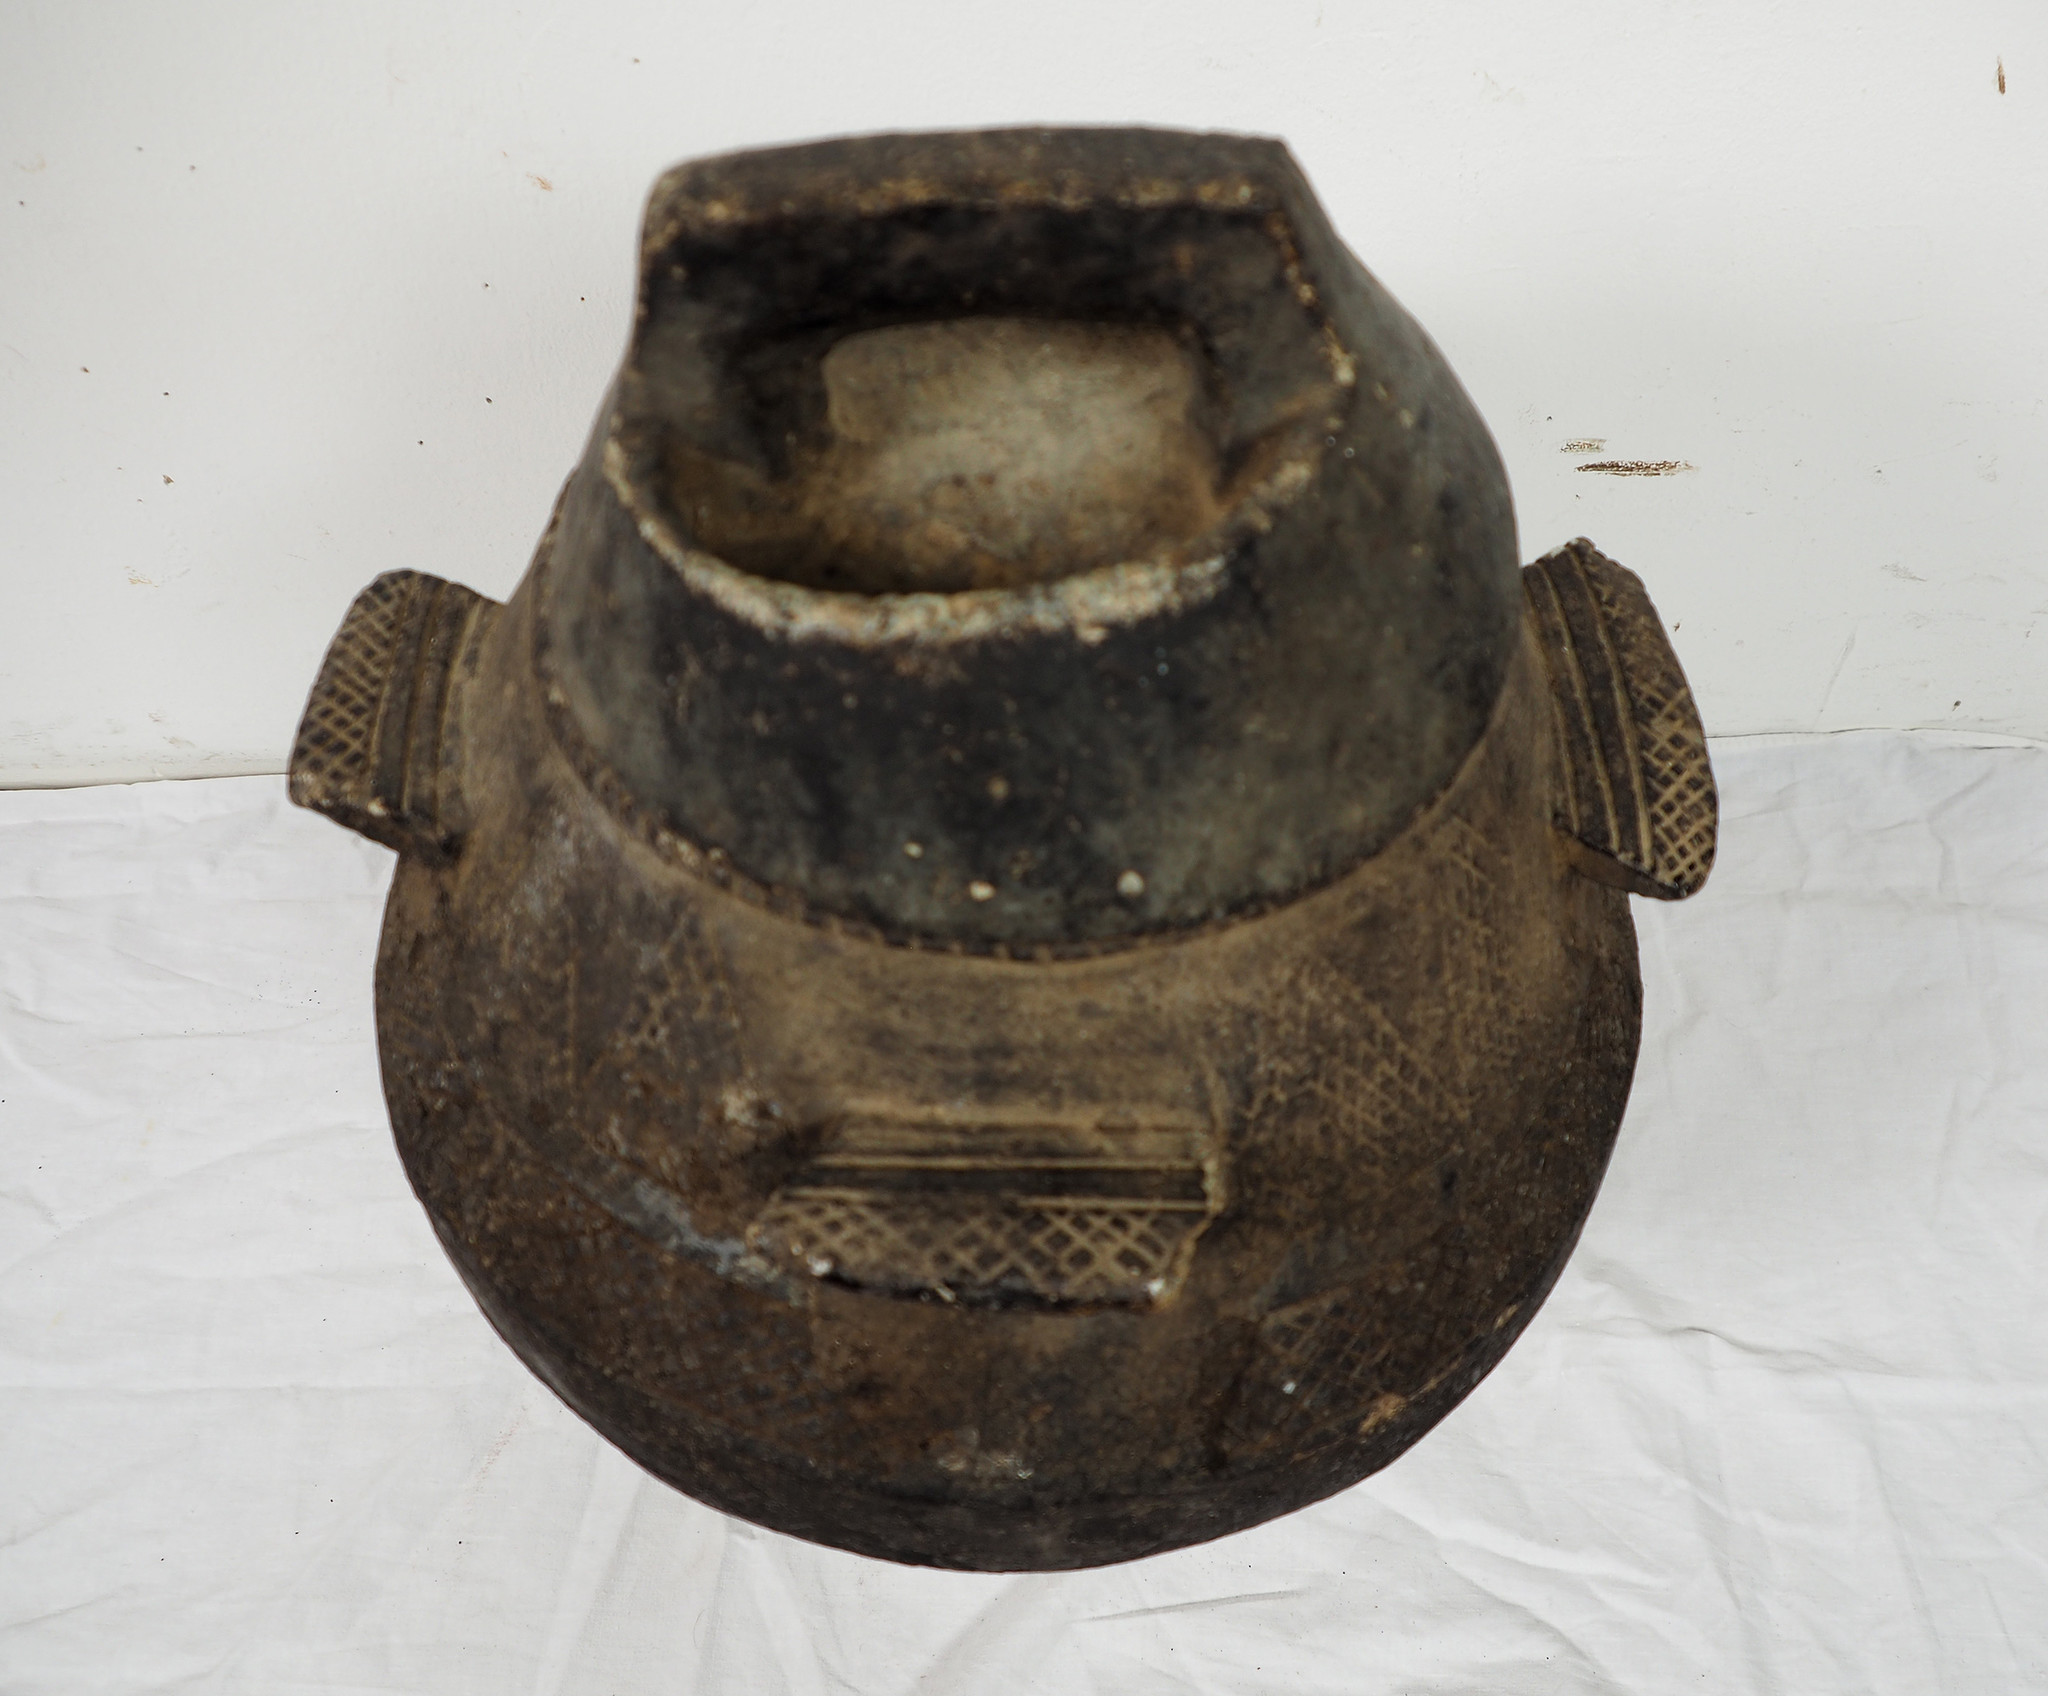 antique Islamic soapstone Large antique heavy tool gray stone cooking pot bowl vessel carved Artifact from Afghanistan / Pakistan Nr:HH